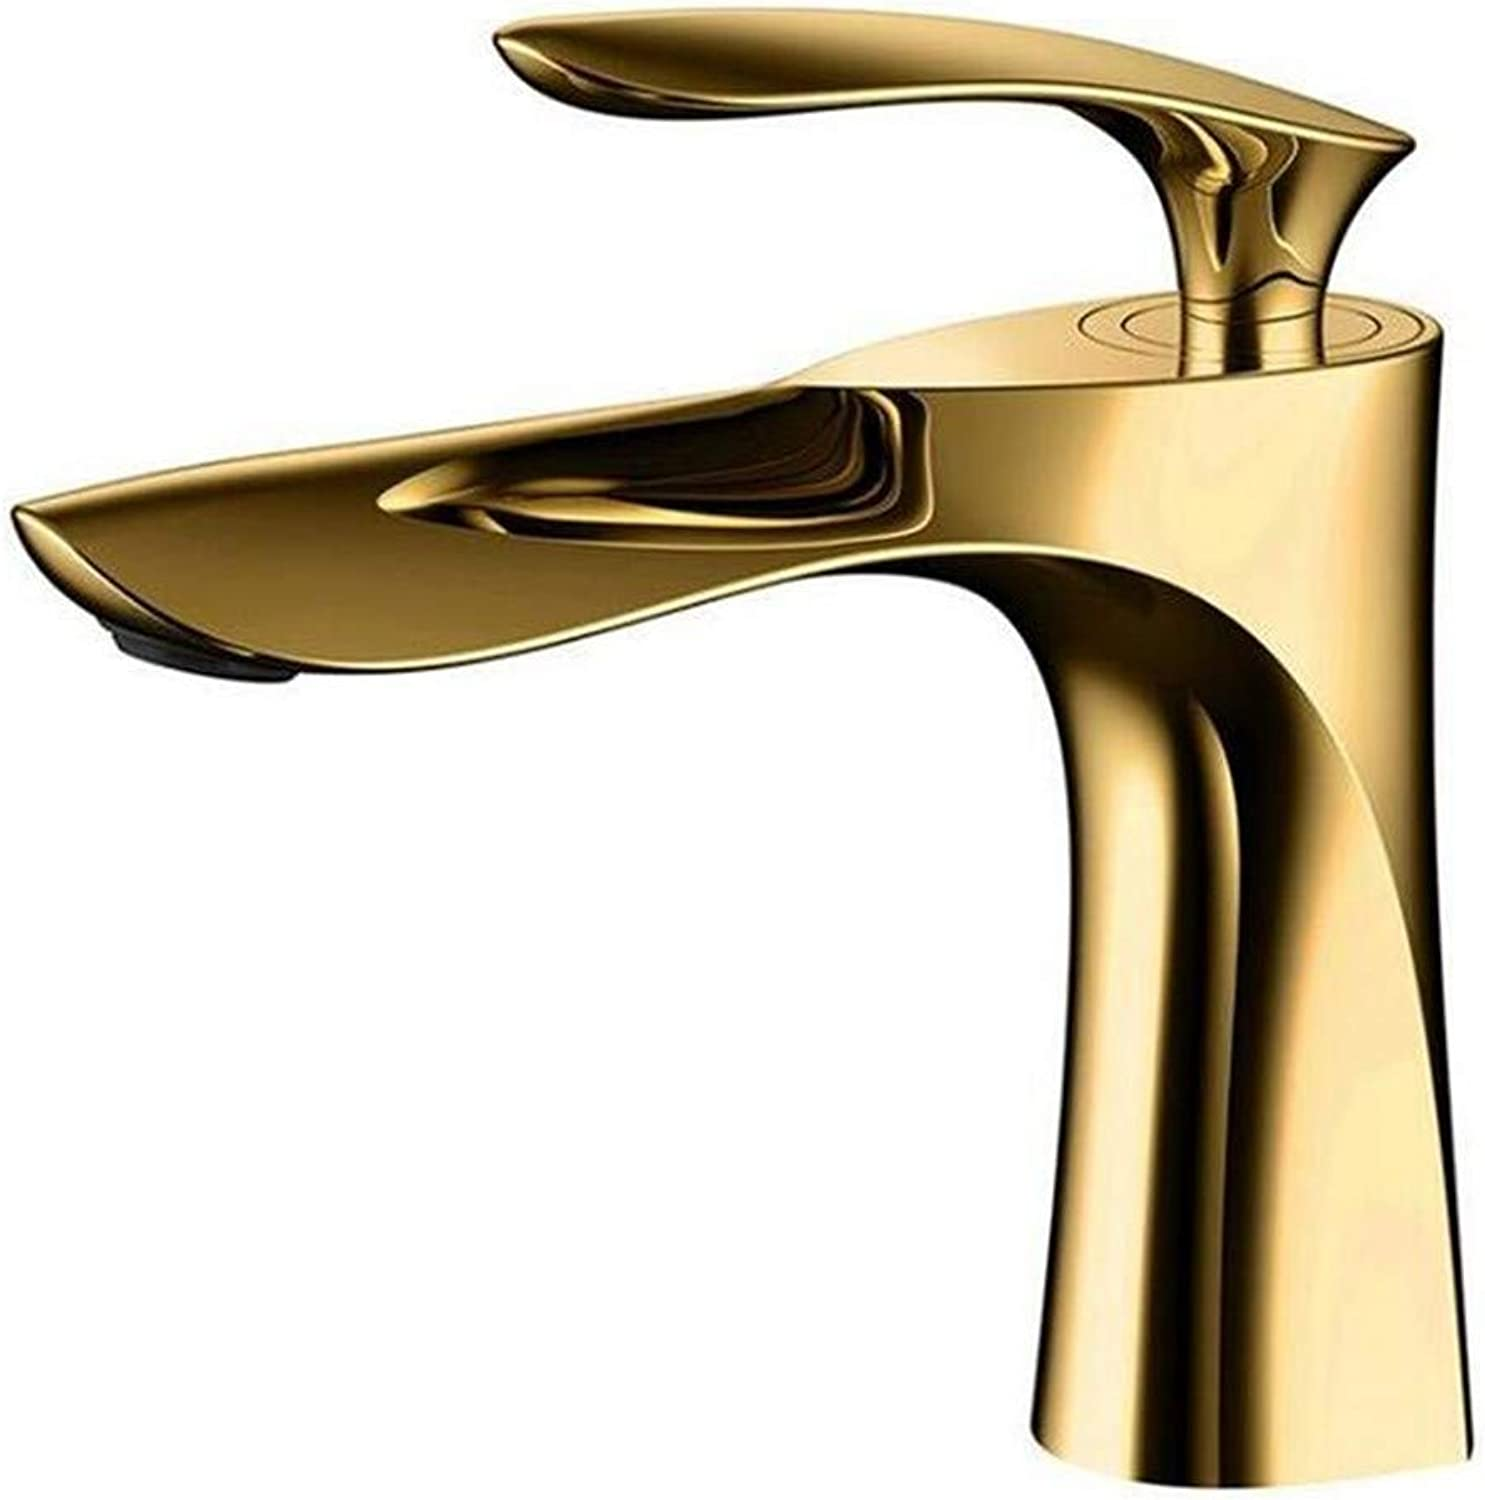 Bathroom Faucet Hot and Cold Water Basin Mixer Tap Chrome gold Black Brass Toilet Sink Water Crane